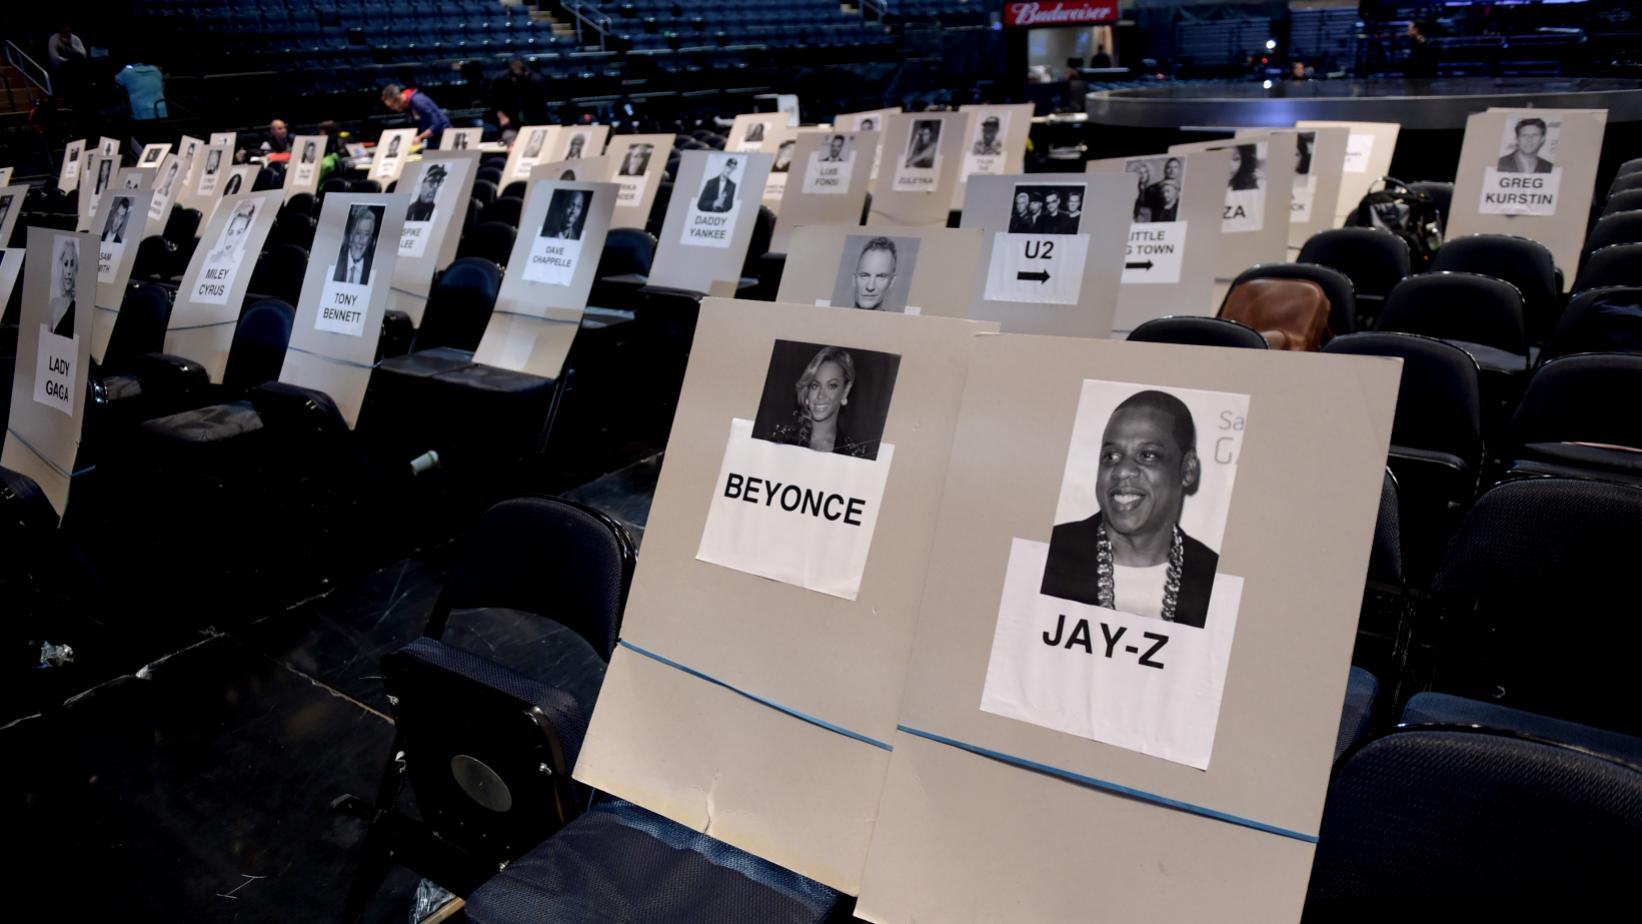 Seat placements at the 60th GRAMMY Awards